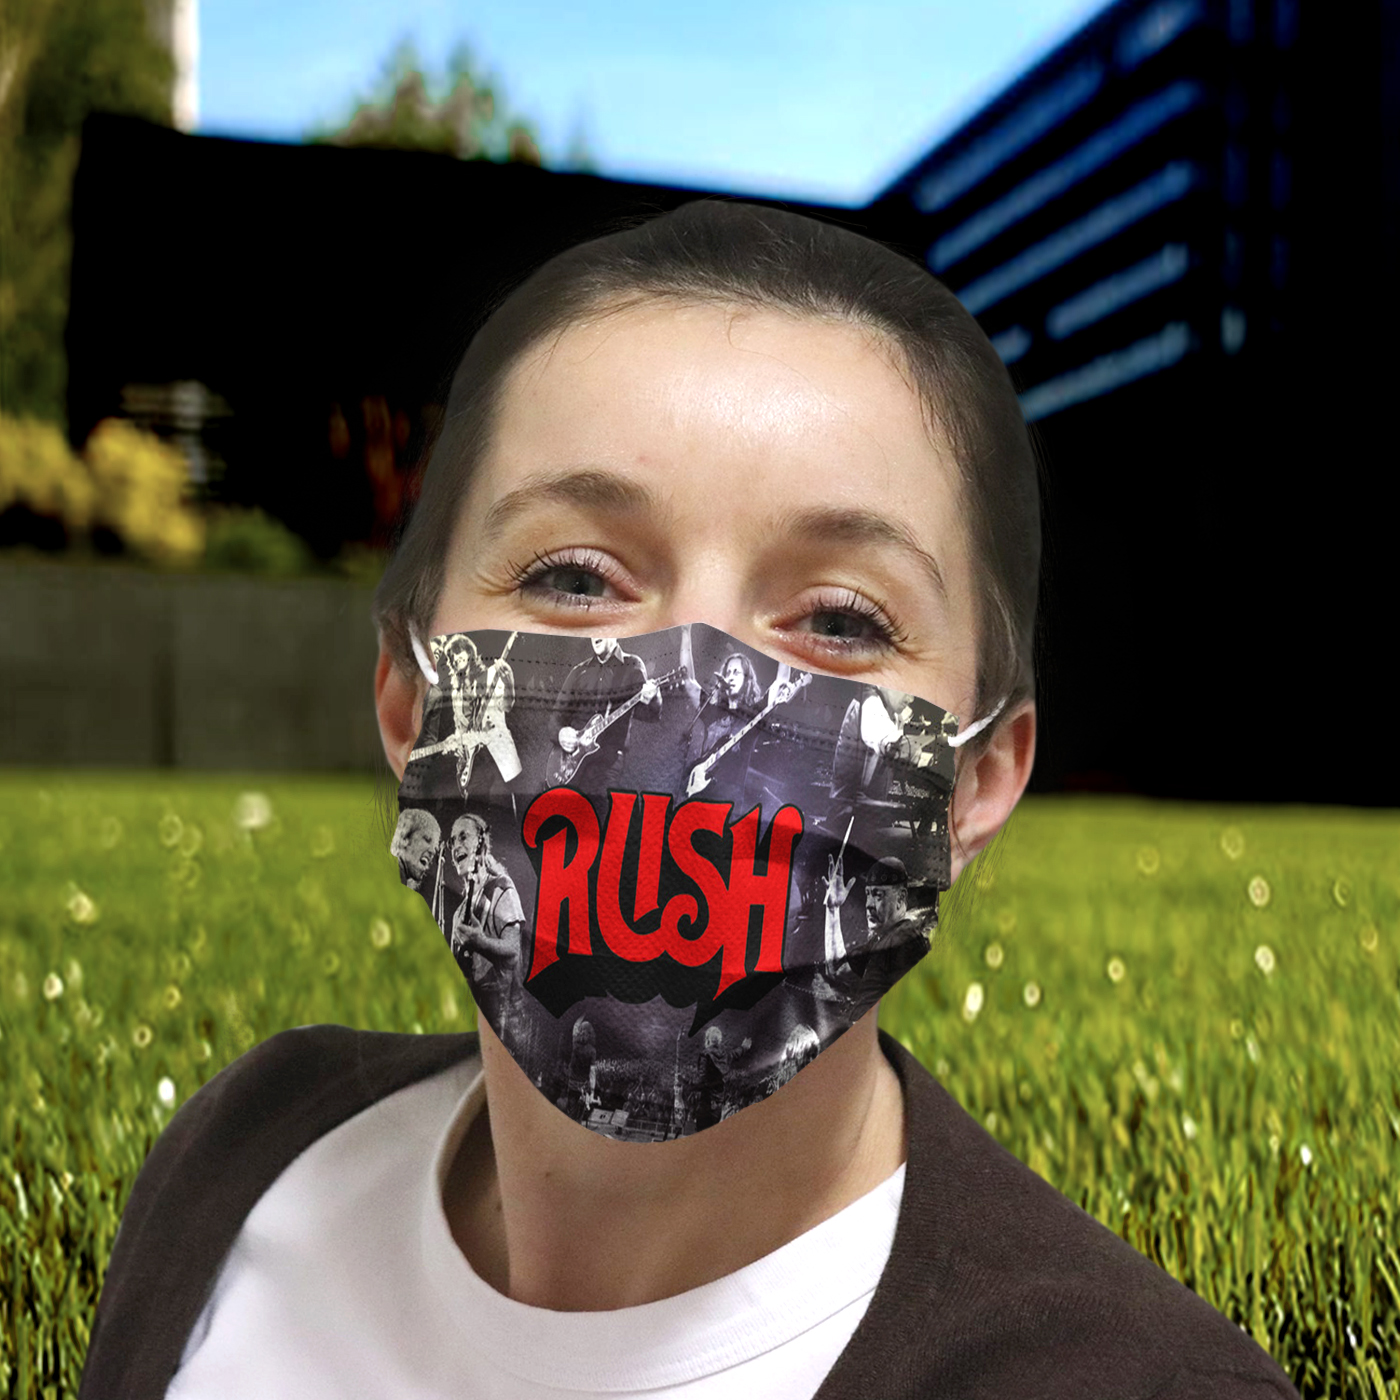 Rush rock band anti-dust cotton face mask 1